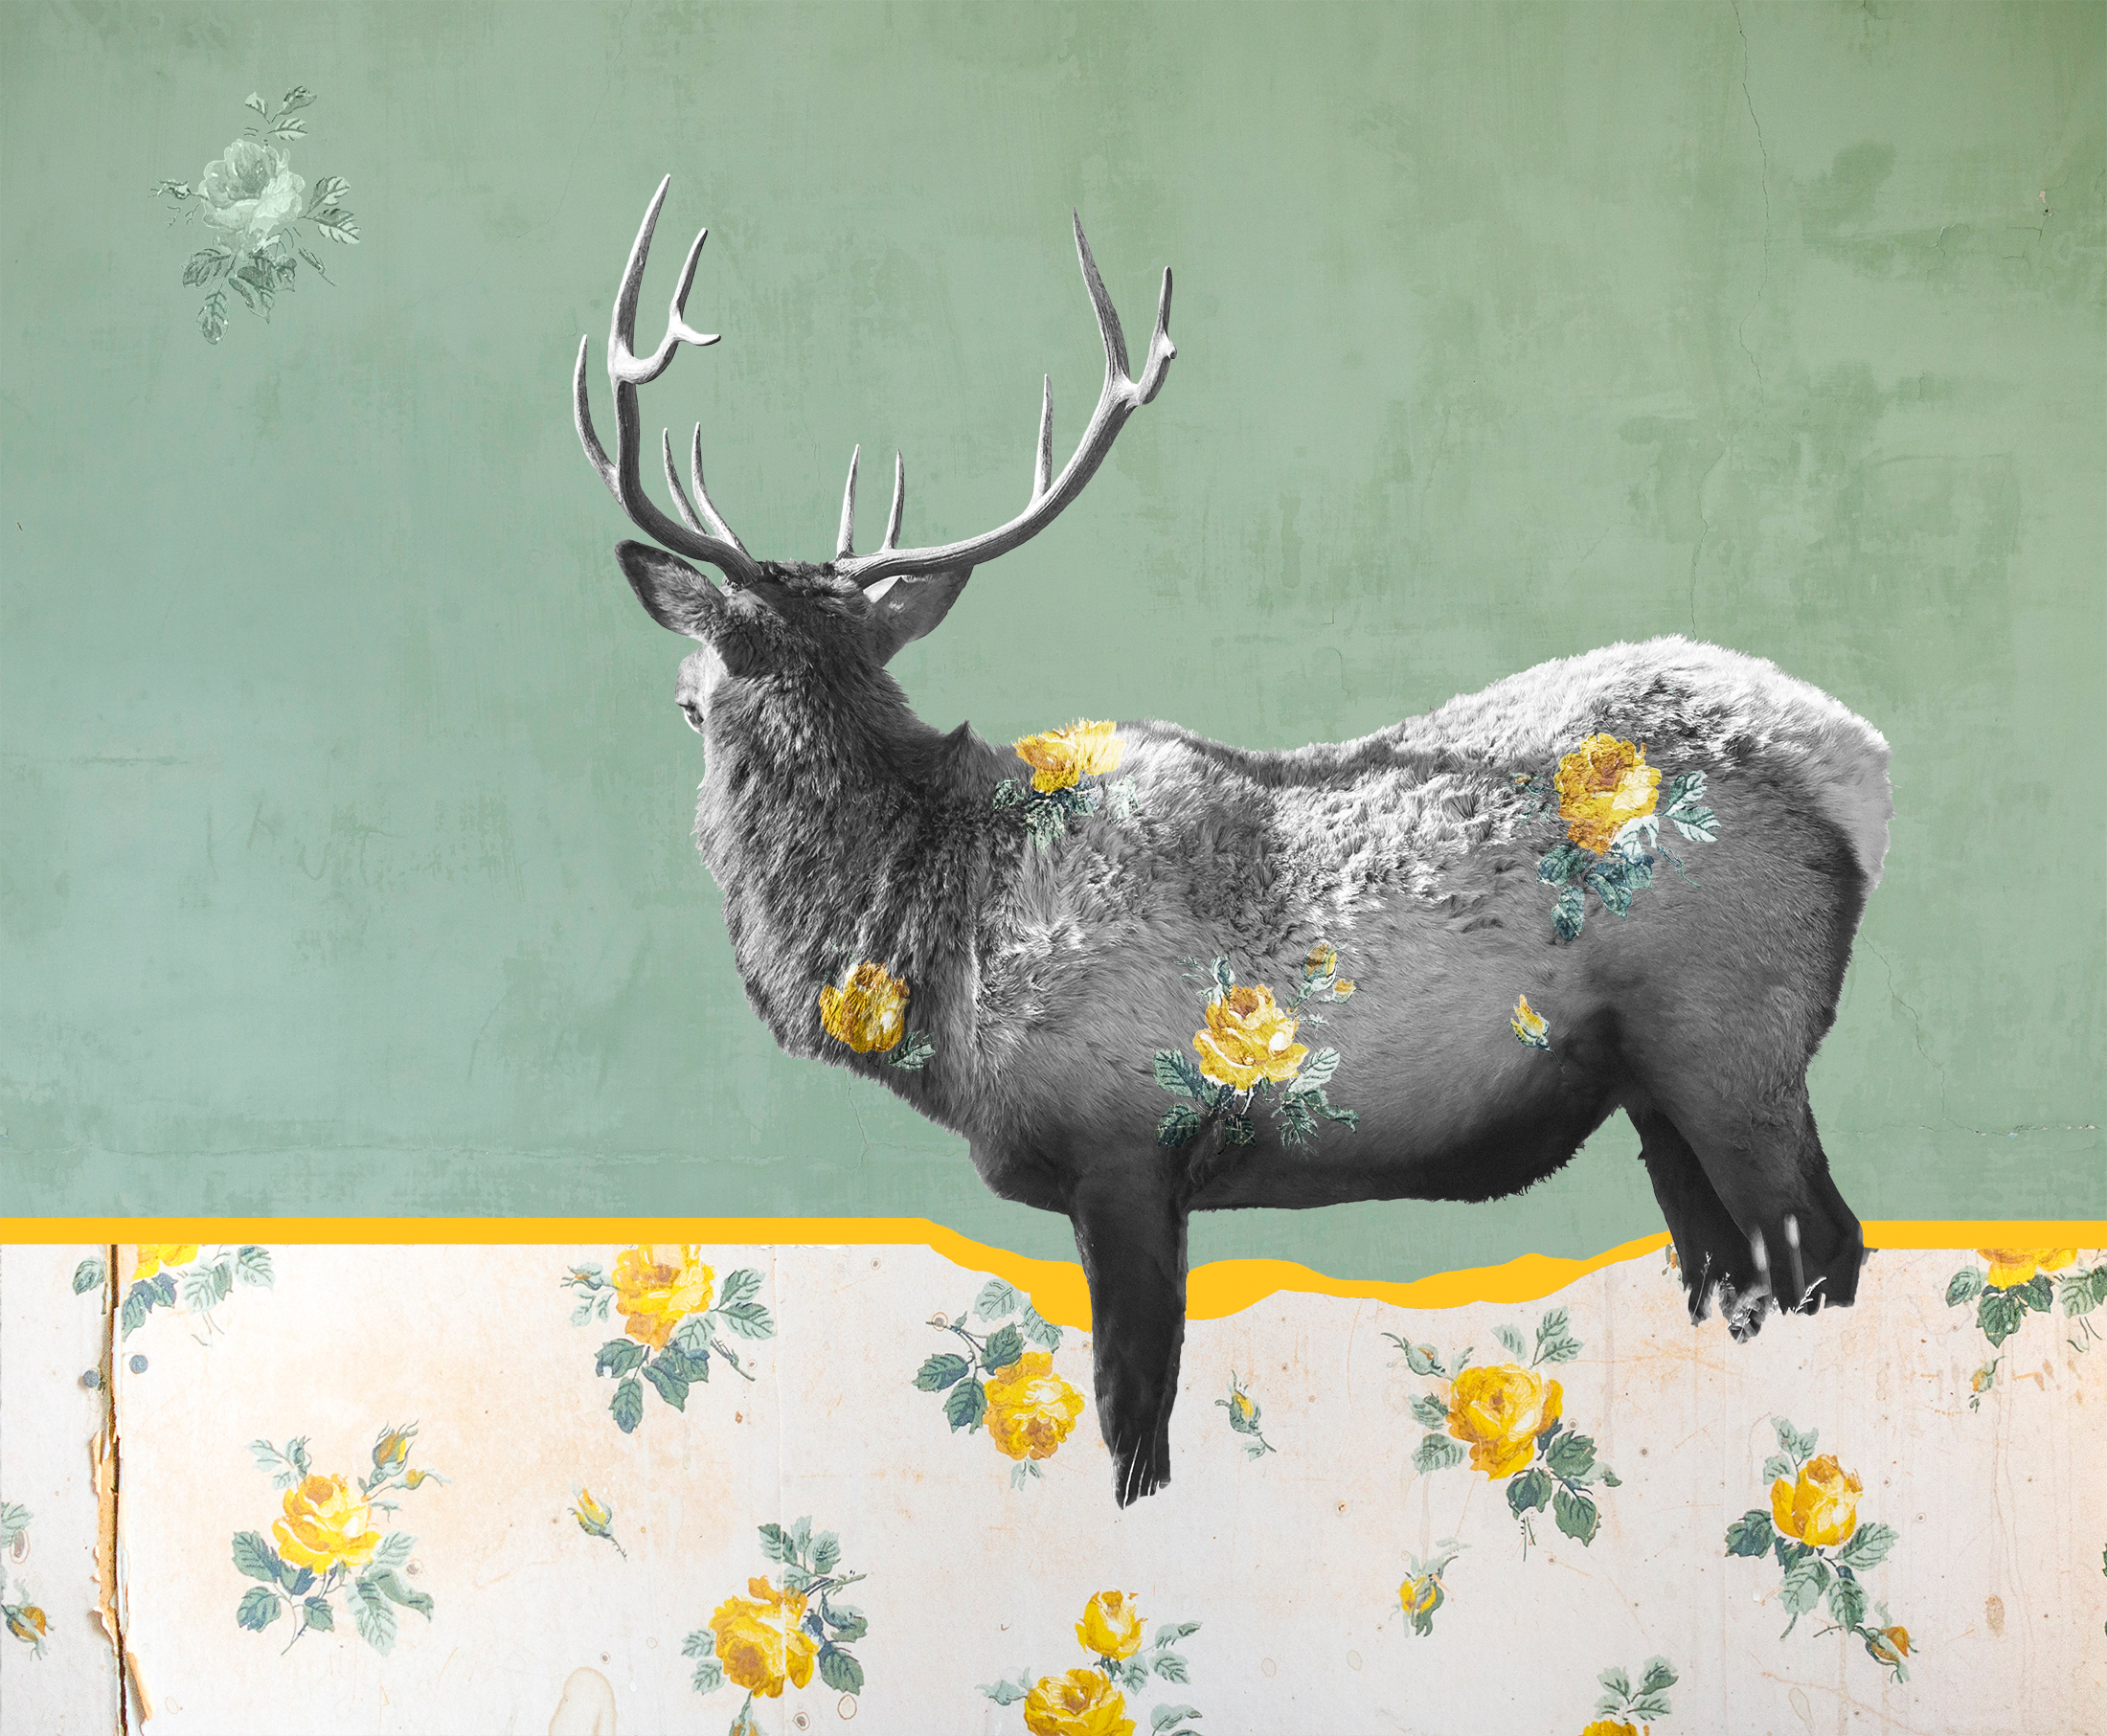 { Elk No. 1 }  Pictured is a bull elk I photographed in Yellowstone National Park. I photographed this wallpaper in the ghost town of Bannack, Montana in the Greater House. Augustus Graeter arrived in Bannack from Nebraska in 1862 and built this home shortly thereafter. Through the years additions were made as various families continued to live there even as the town itself was in decline. The solid colored background is the painted plaster walls of the abandoned Hotel Meade, also in Bannack, which was founded in 1862 after gold was discovered along Grasshopper Creek. The town was the first Capitol of the Montana Territory.